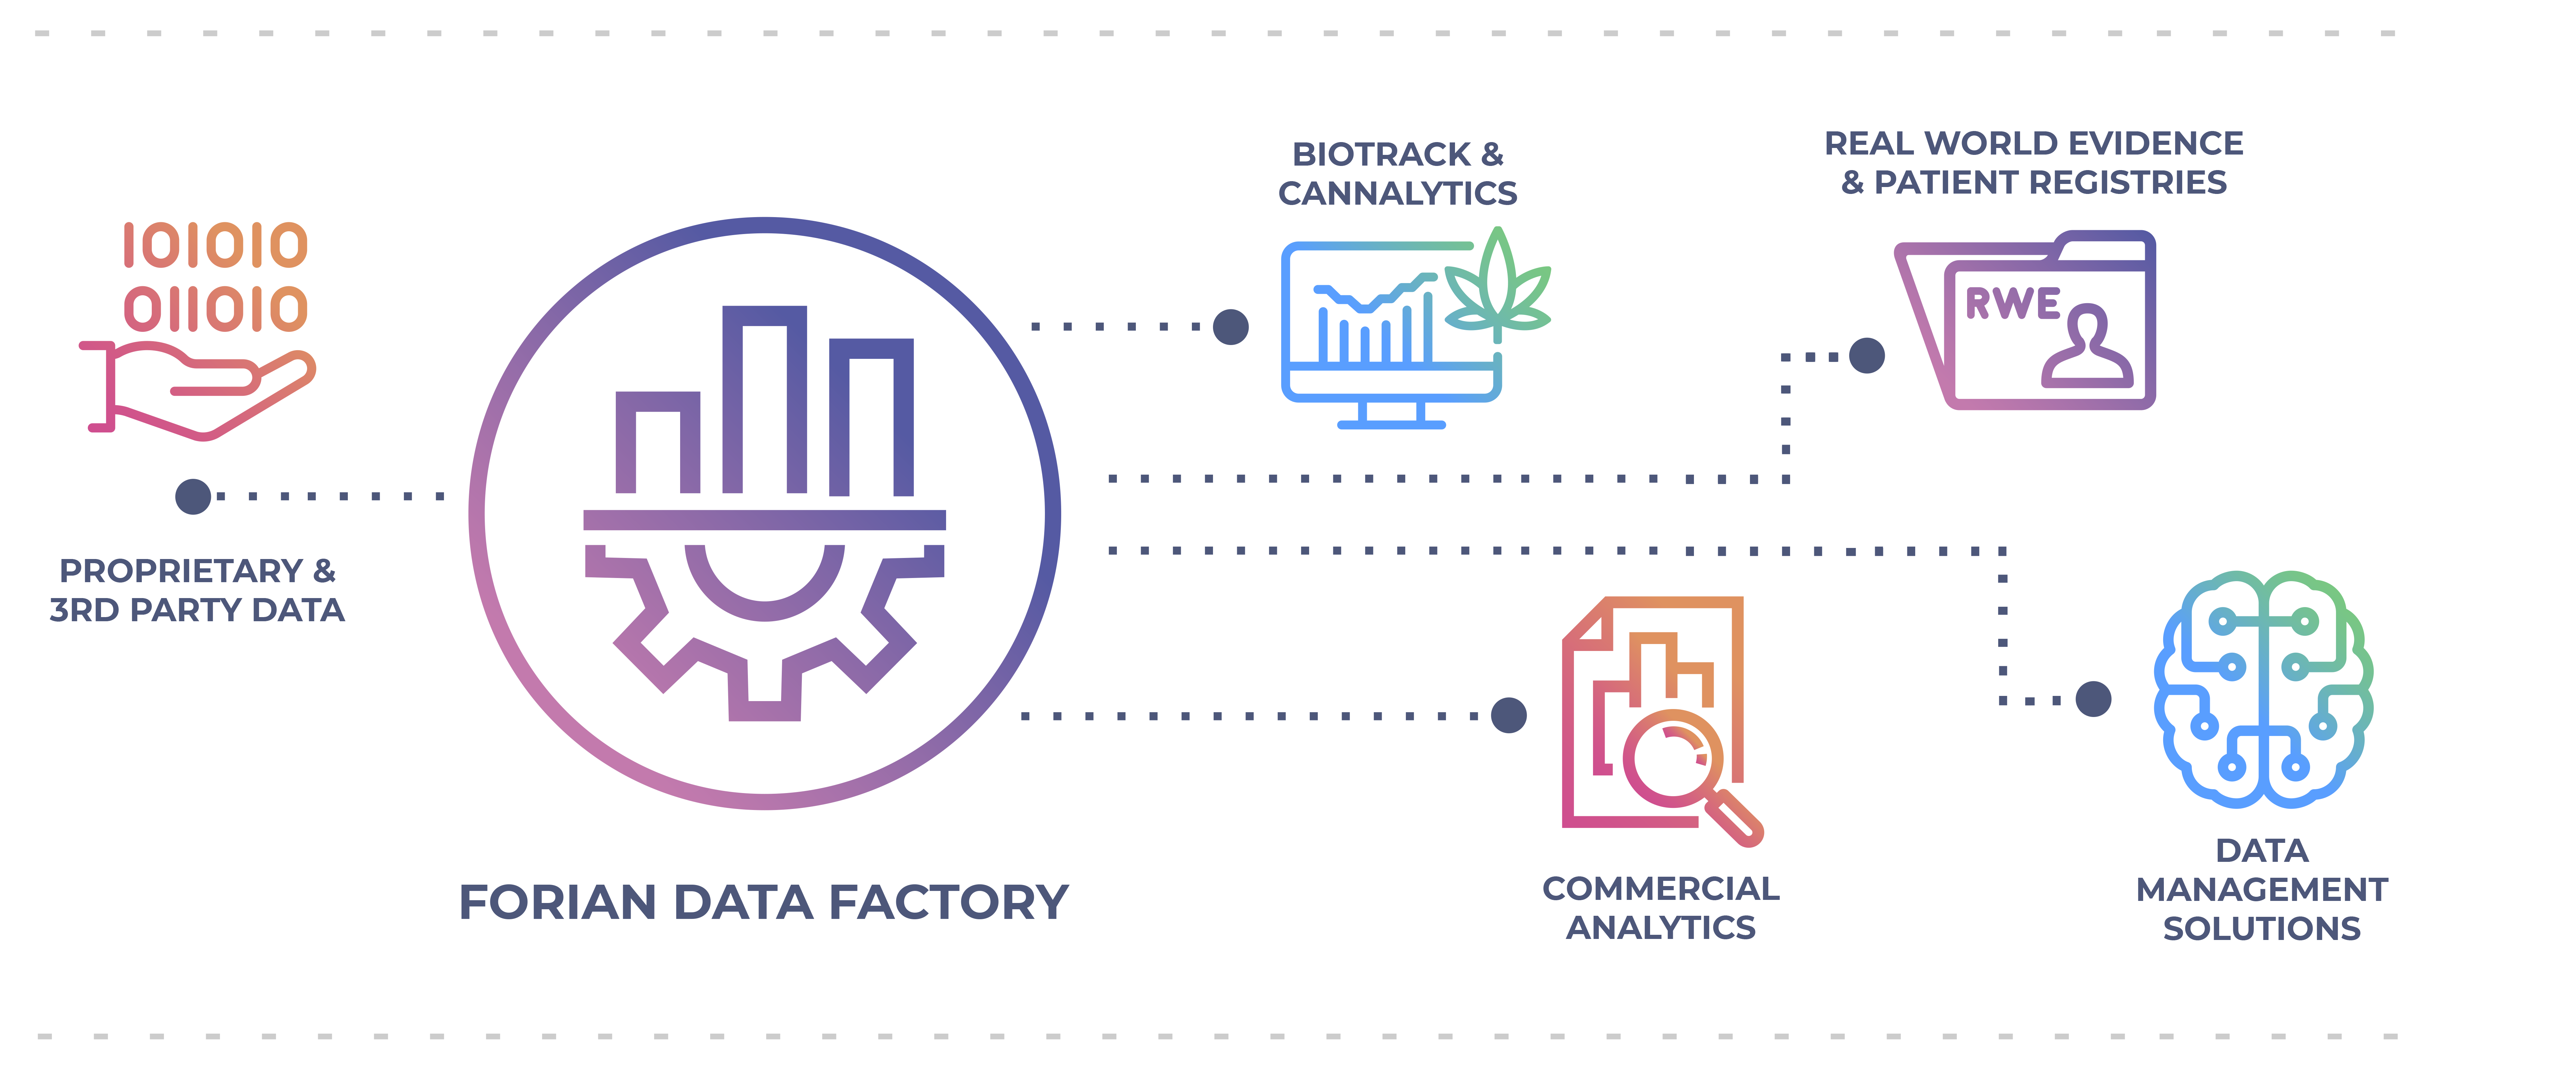 The Forian Data Factory uses proprietary and third party data to create biotrack & cannalytics, commercial analytics, real world evidence & patient registries, and data management solutions.